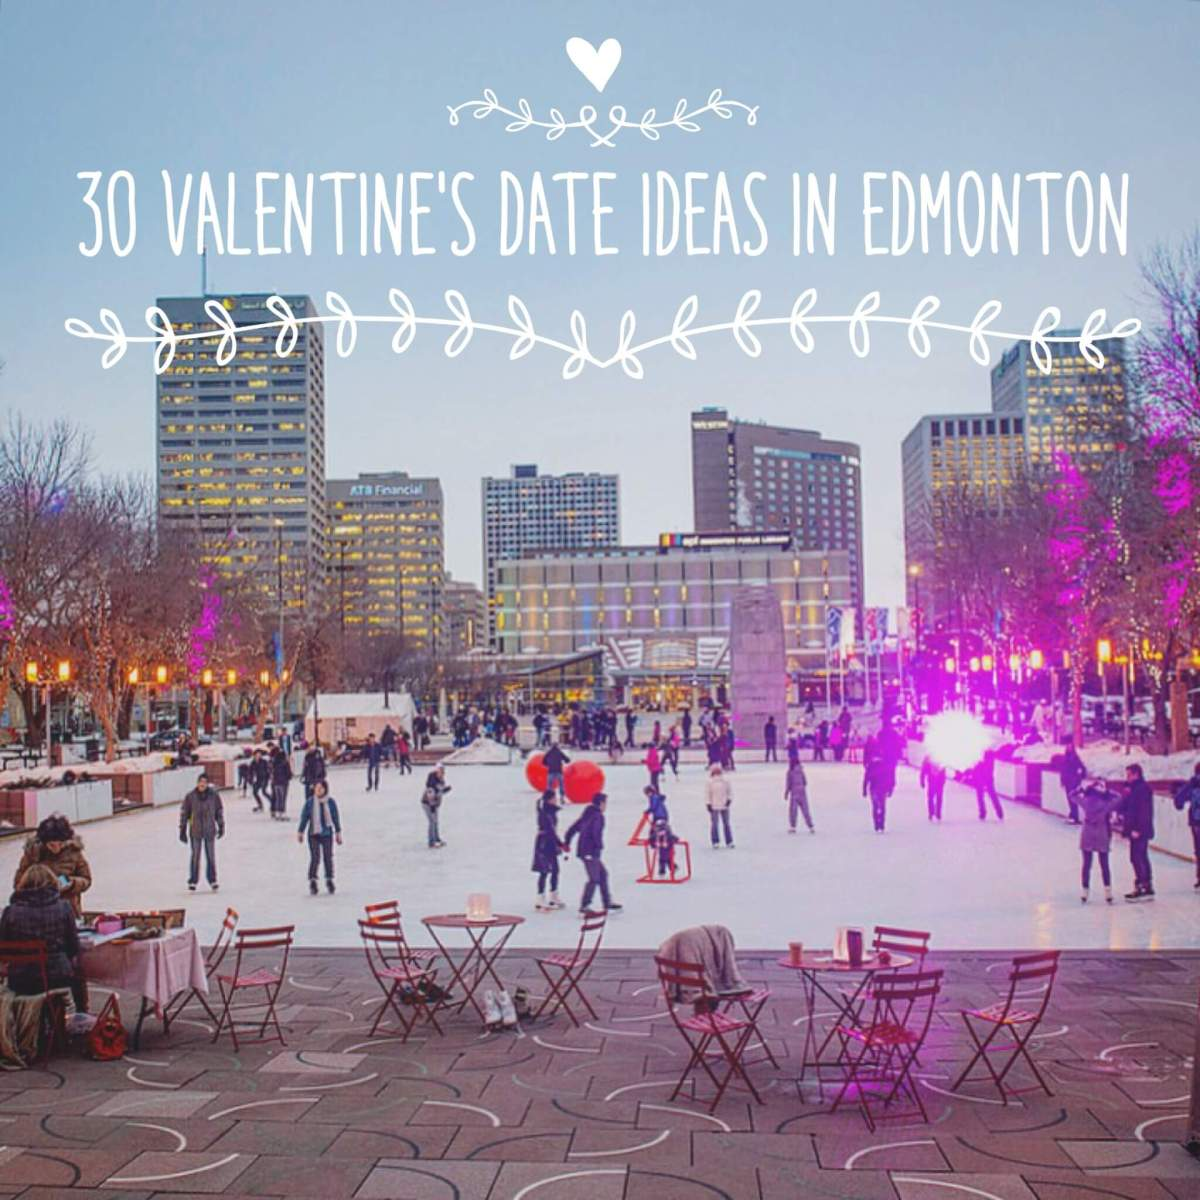 30 Valentine's Date Ideas in Edmonton (2016)